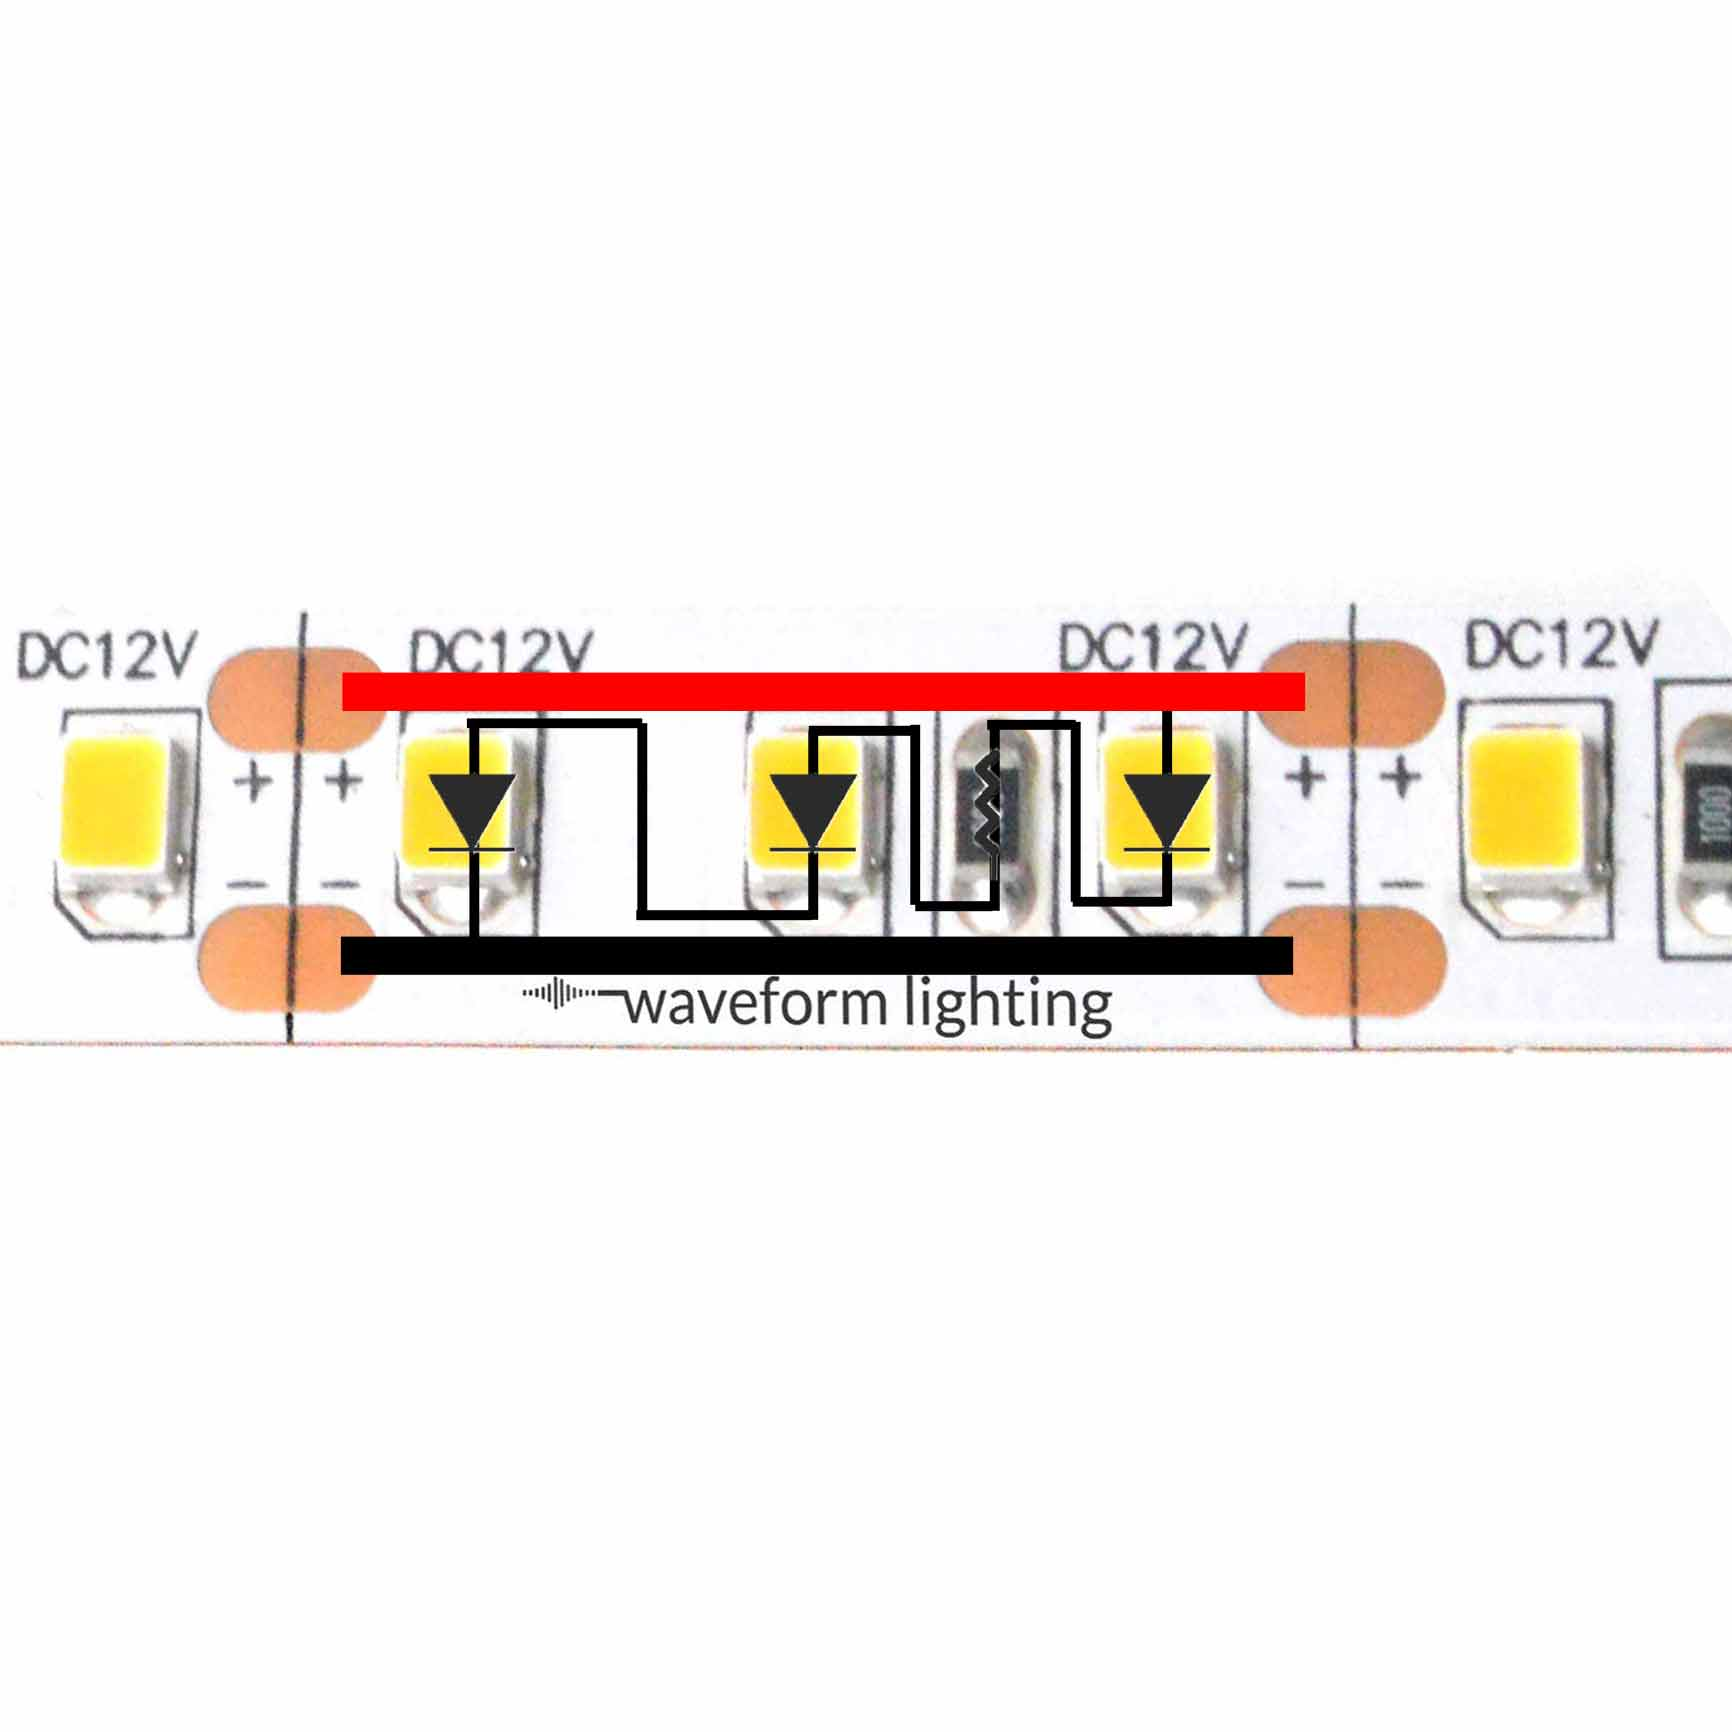 Led Strip Light Internal Schematic And Voltage Information 120 Volt 4 Circuit What Happens To Leds In Parallel The Remains Same But Current Is Split Equally Among Each Of Circuits